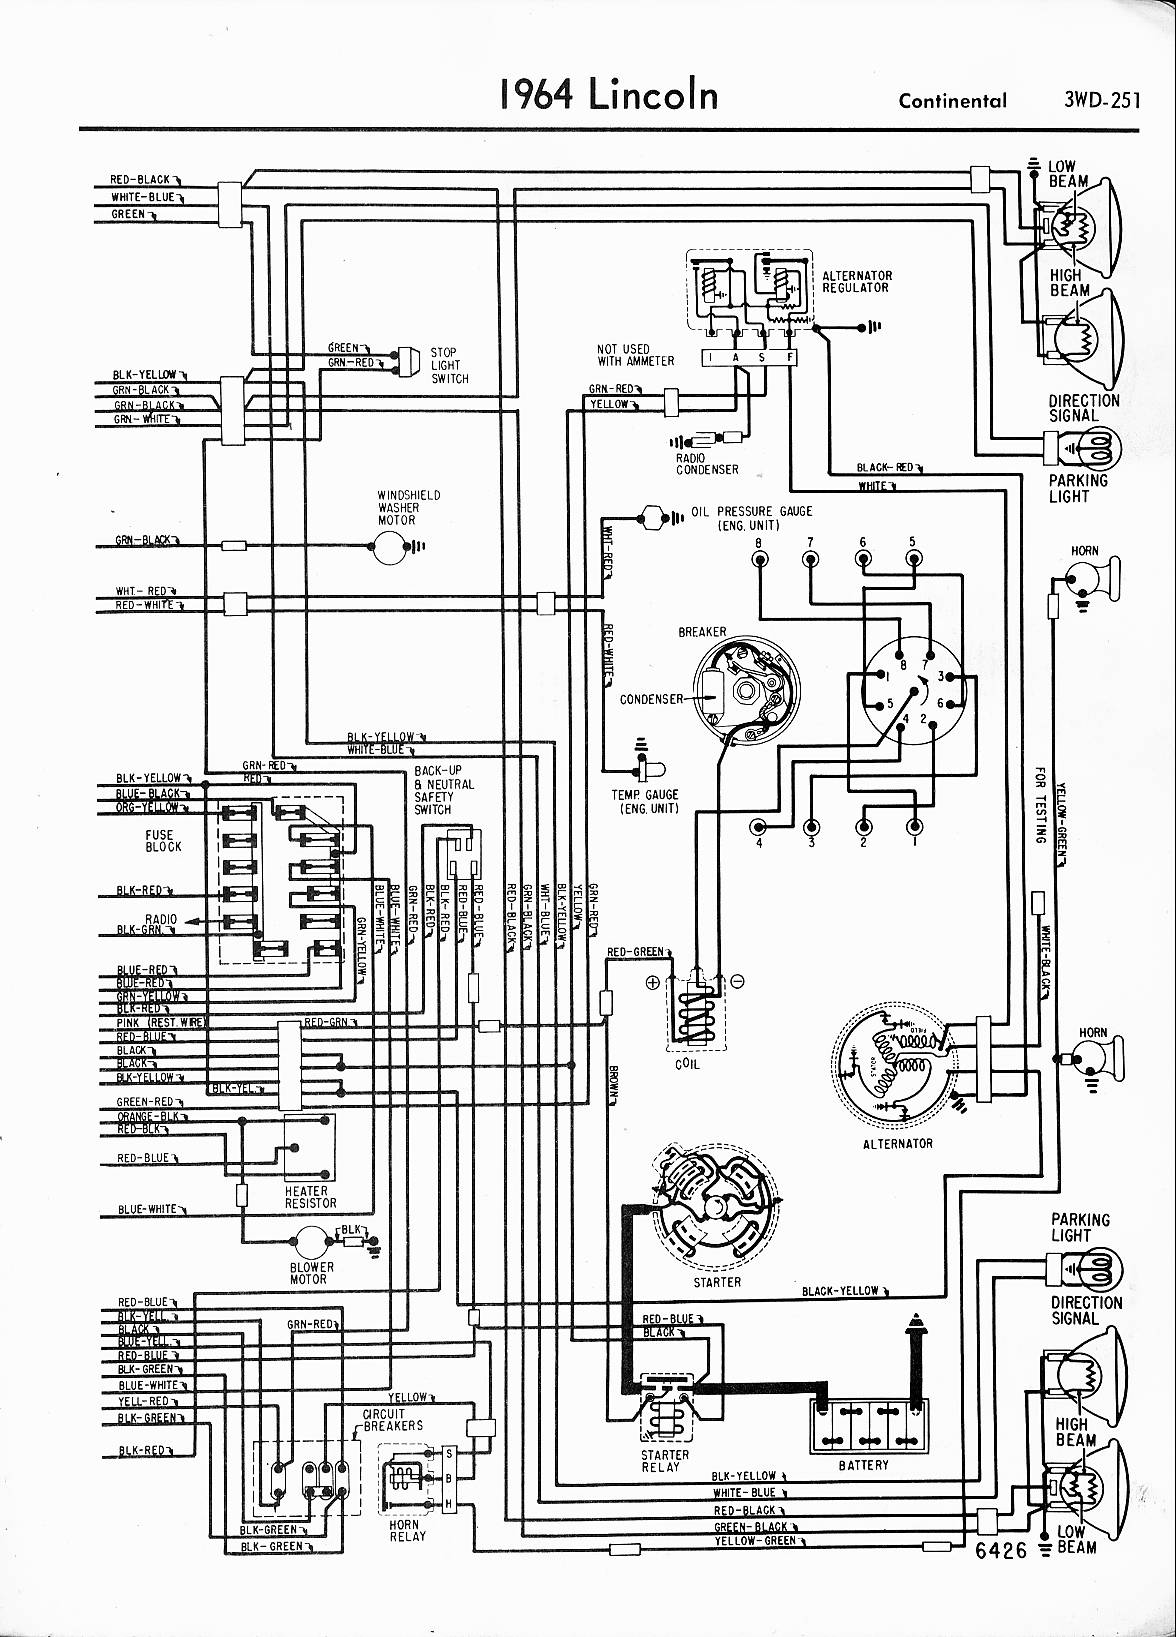 Lincoln Continental Convertible Top Wiring Diagram Content 2000 Beetle  Heater Wiring Diagram 1967 Lincoln Wiring Diagram